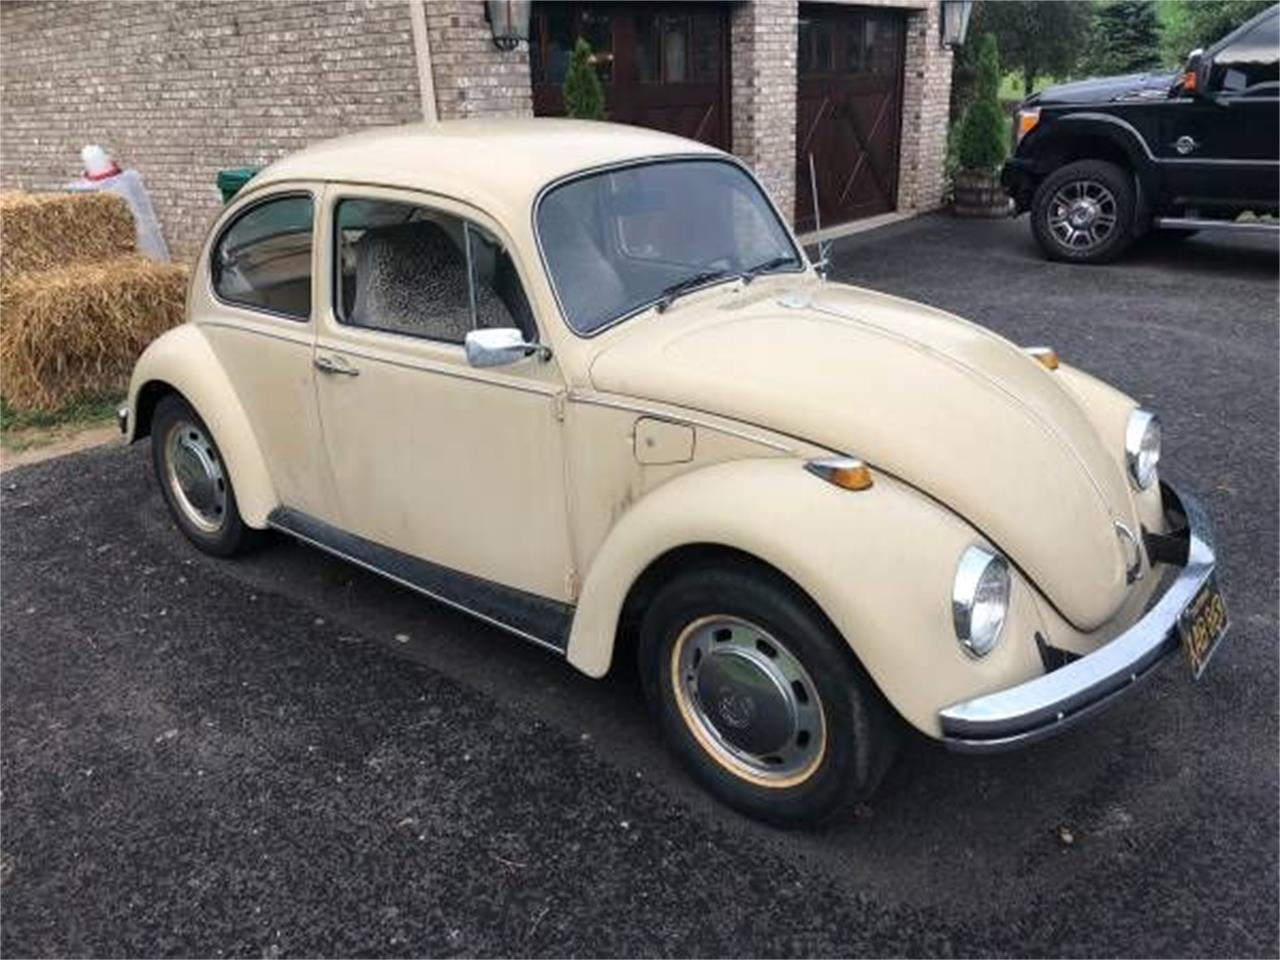 For Sale: 1968 Volkswagen Beetle in Cadillac, Michigan